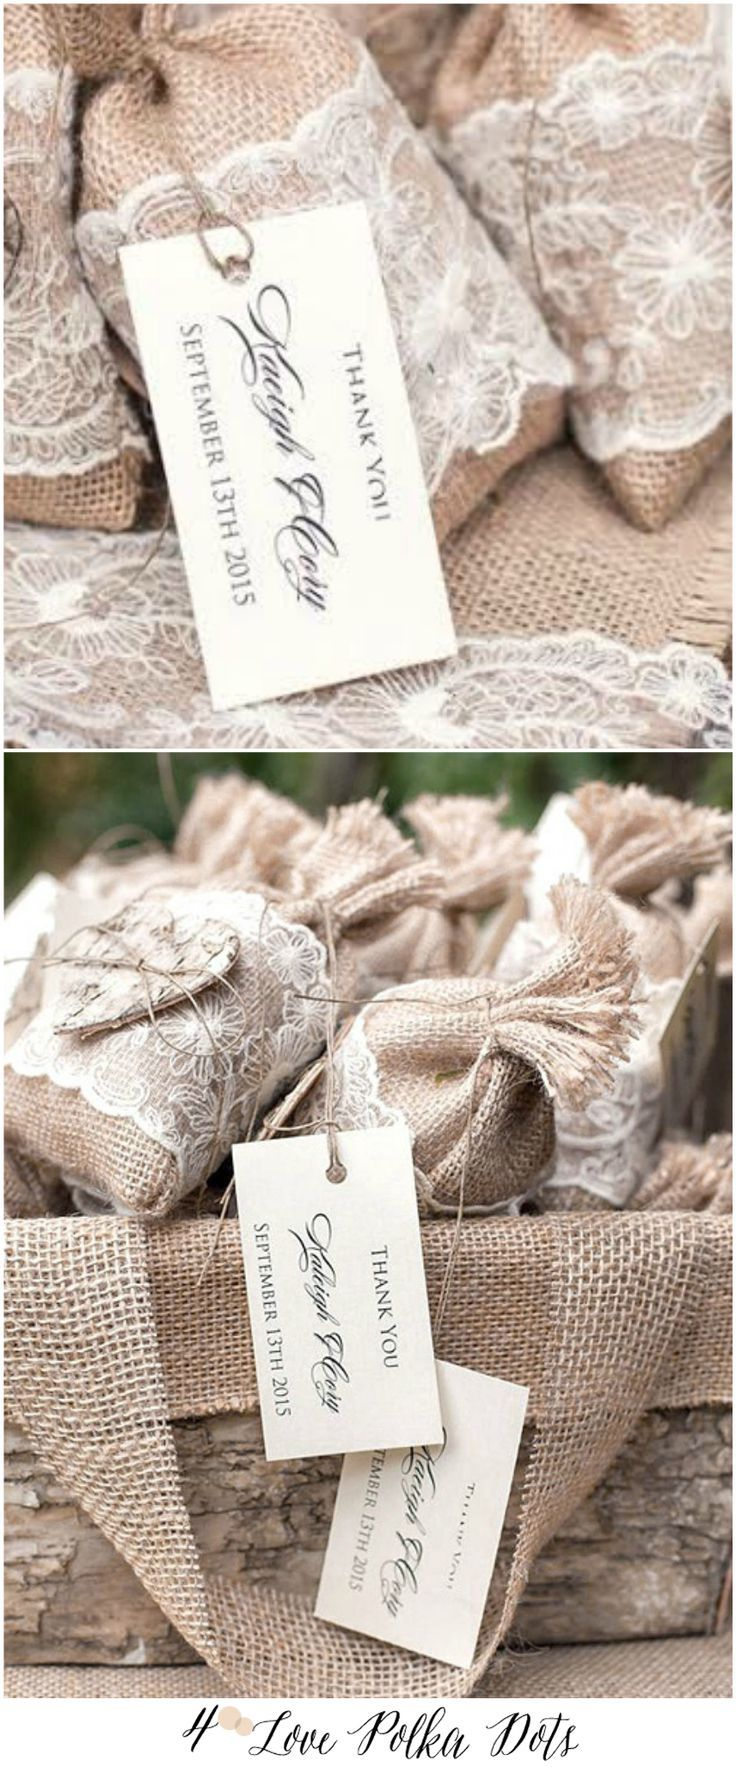 25 best Local | Favorite Wedding Venues images on Pinterest ...